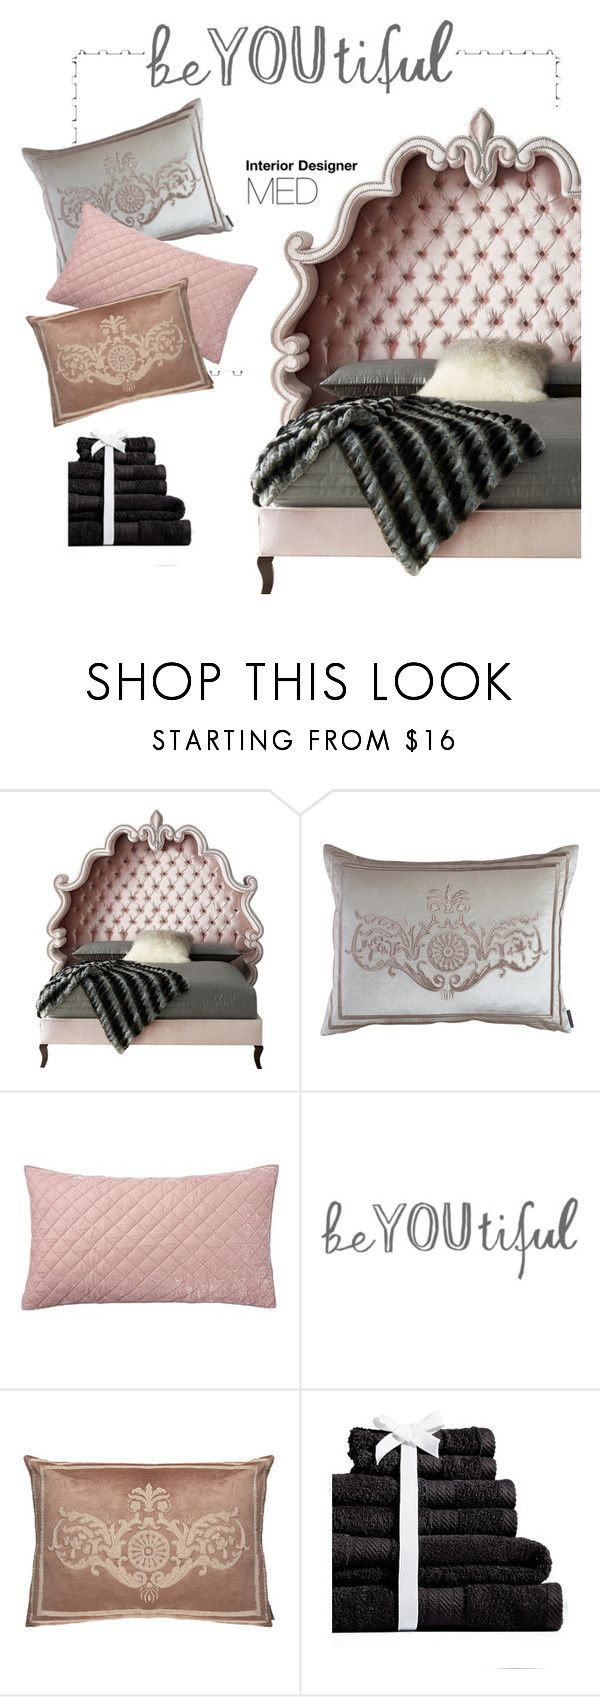 """""""Nude📎"""" by mayadh-alshehri ❤ liked on Polyvore featuring interior, interiors, interior design, home, home decor, interior decorating, Haute House, Lili Alessandra, Pottery Barn and Baltic Linen Company"""